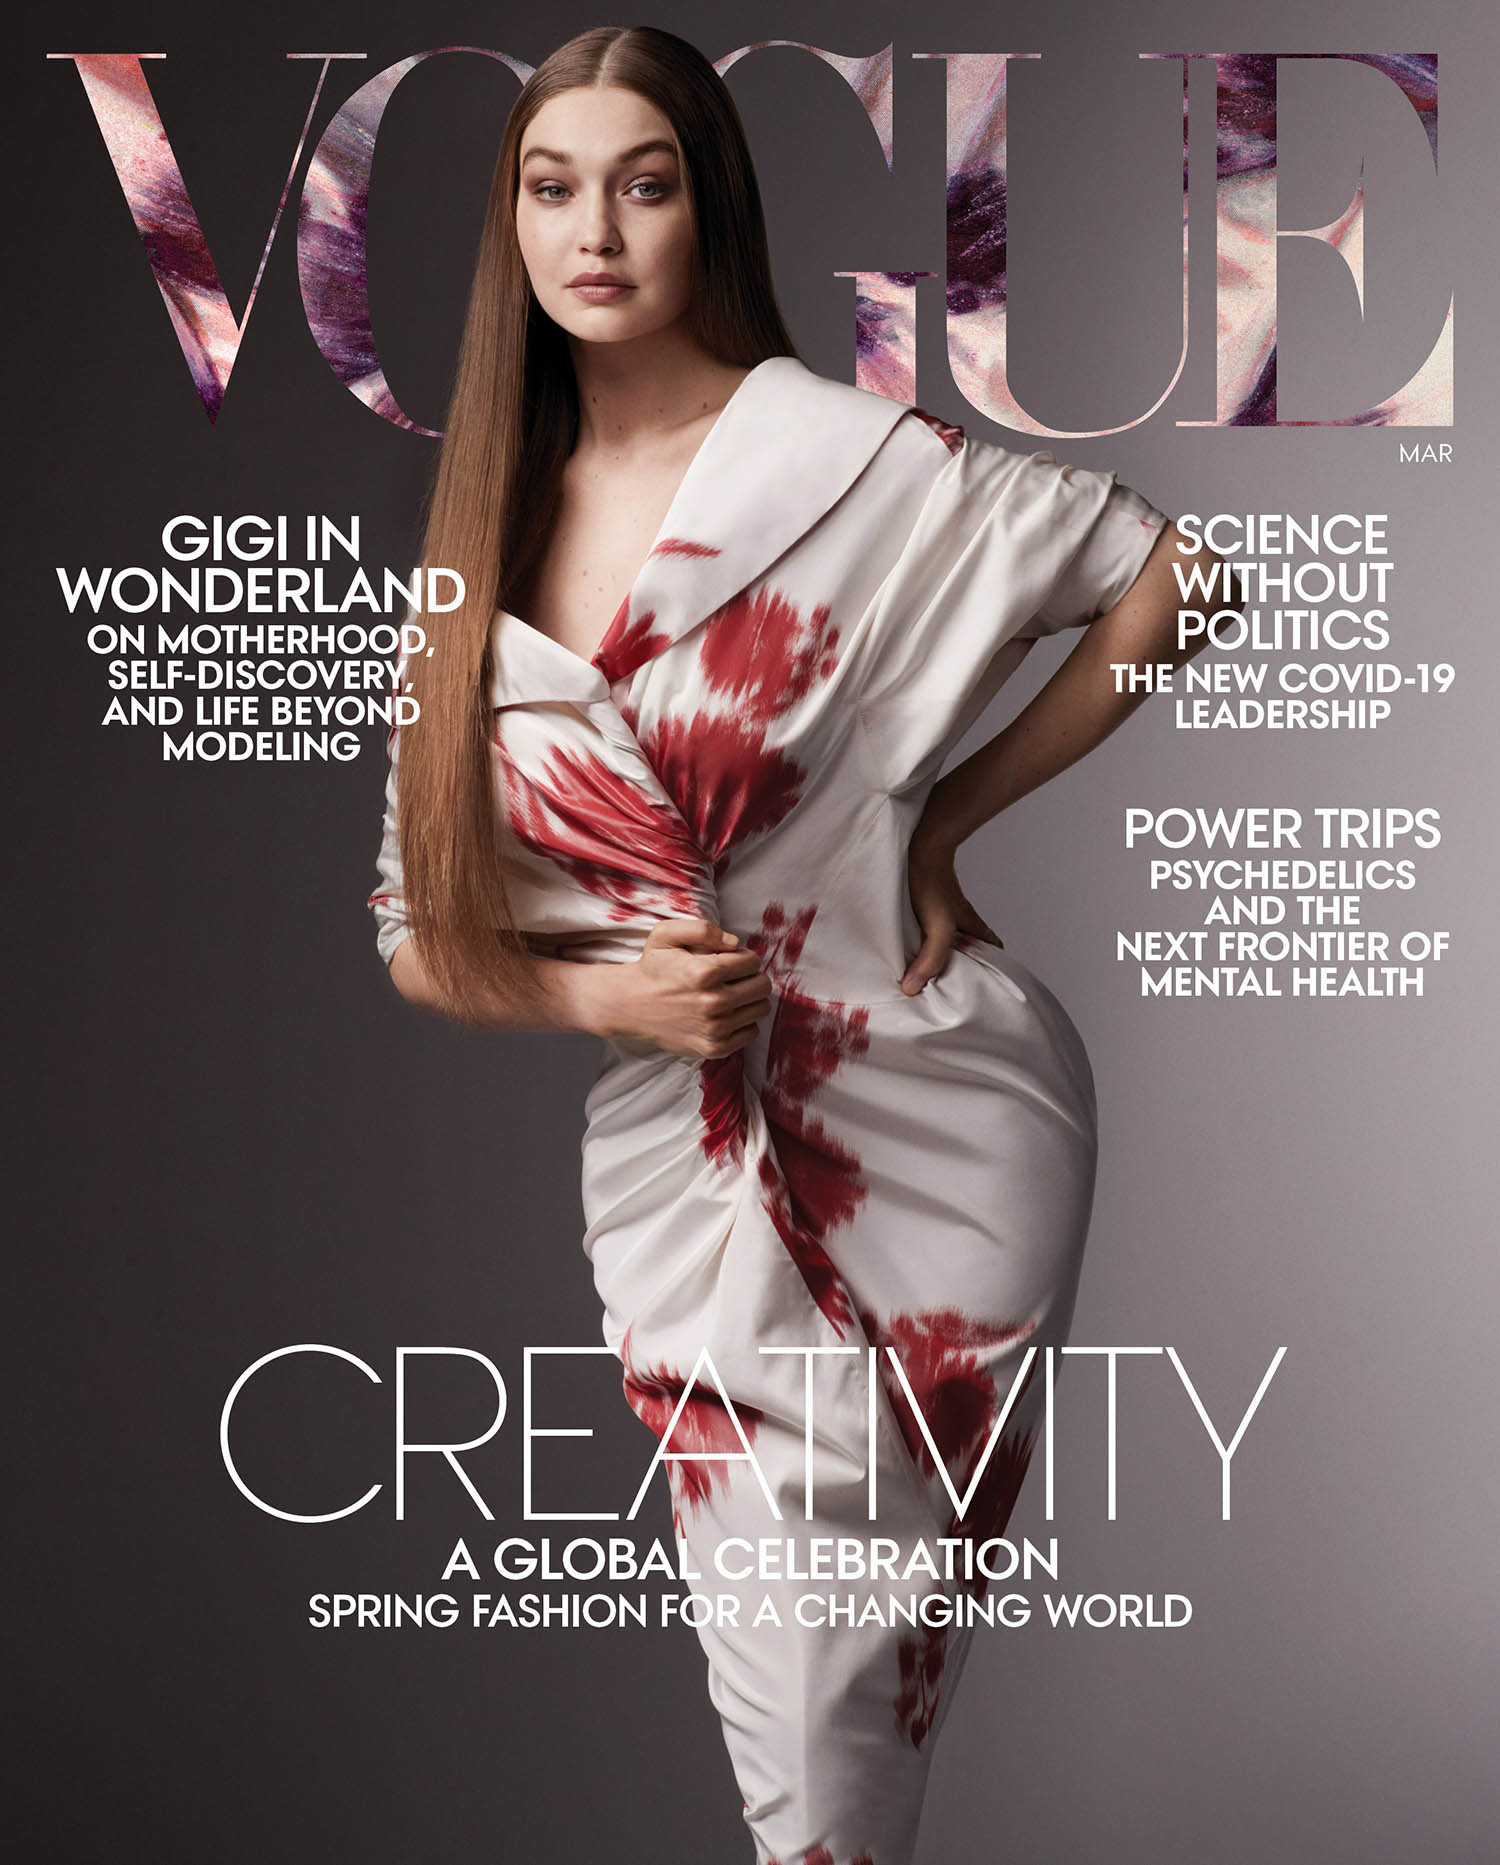 Gigi Hadid covers Vogue US March 2021 by Ethan James Green